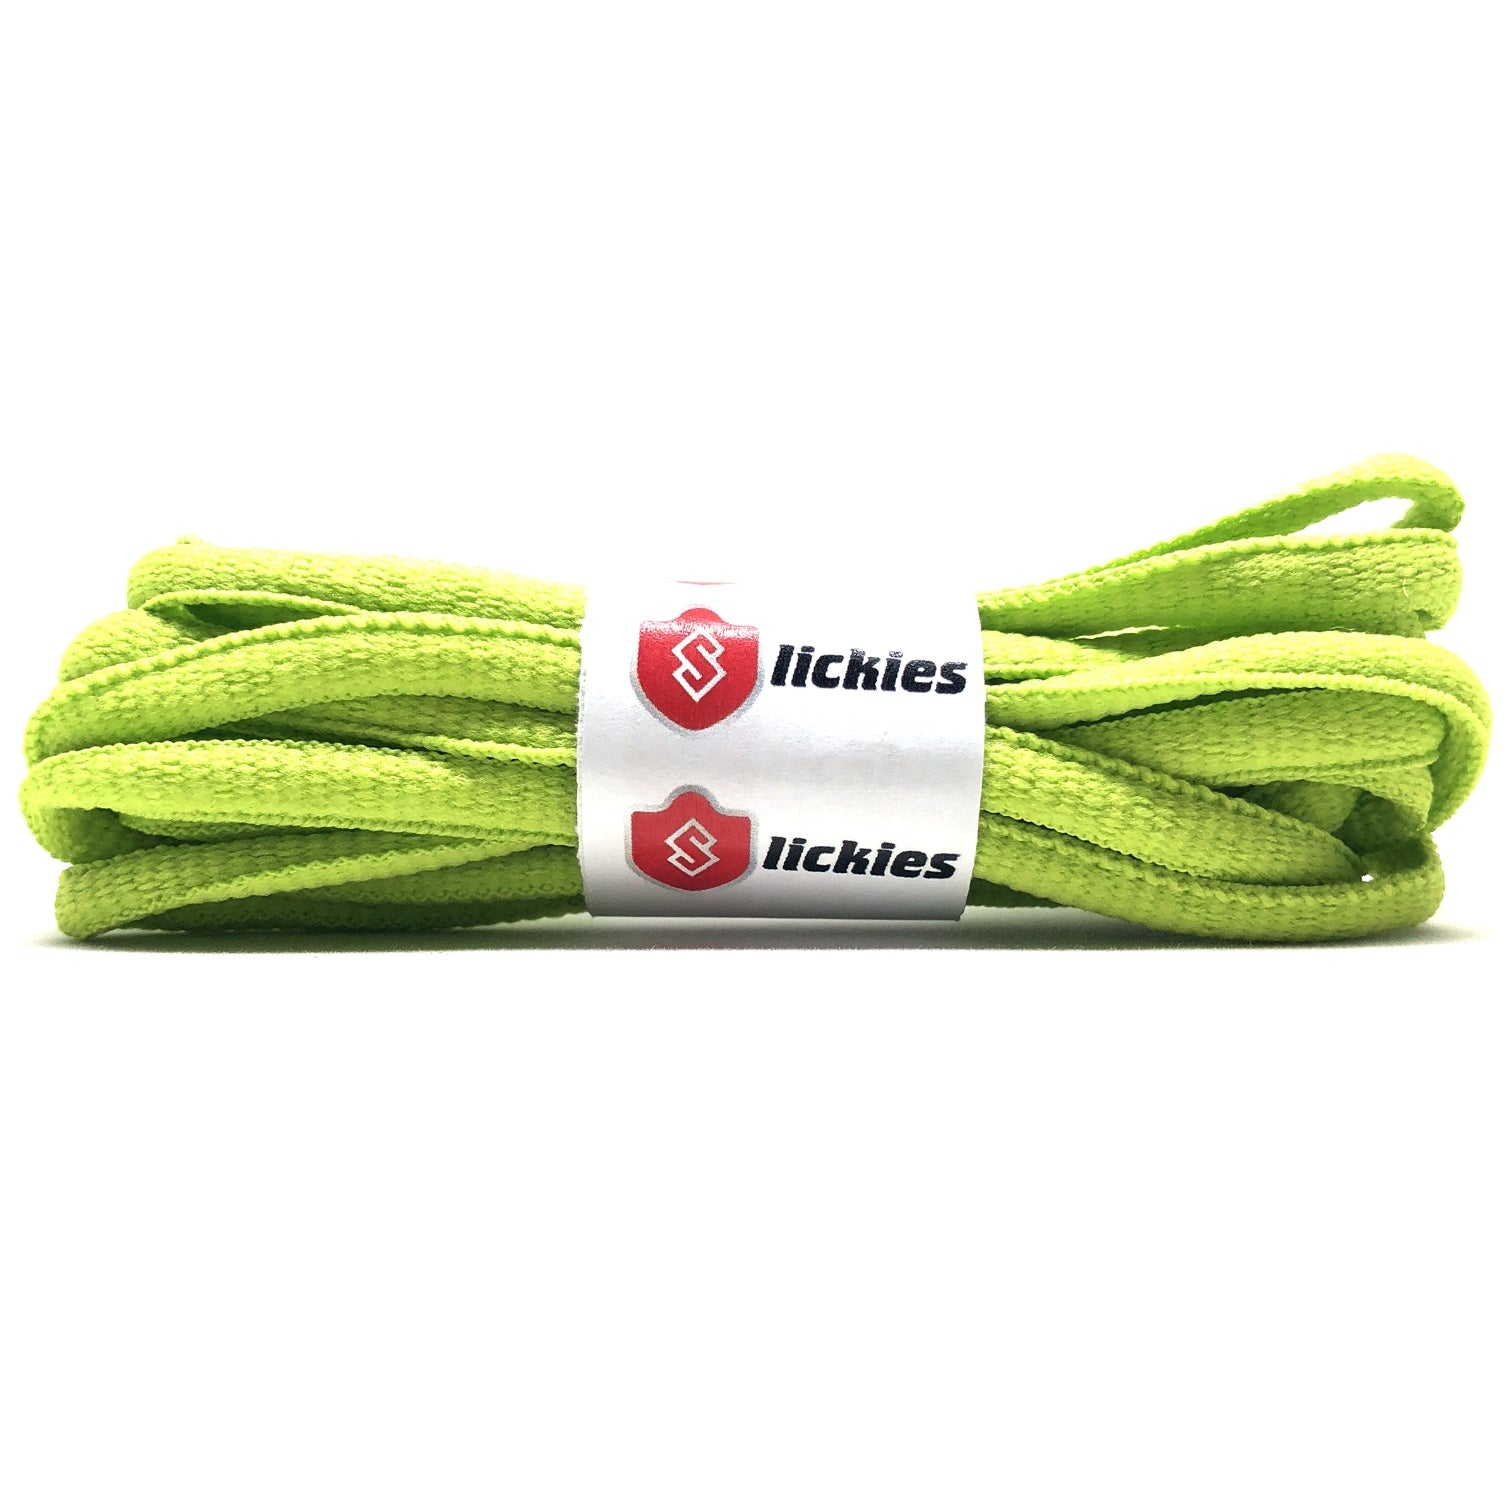 8dda85a59ce9e BASICS Oval Laces - Frozen Yellow - Slickies